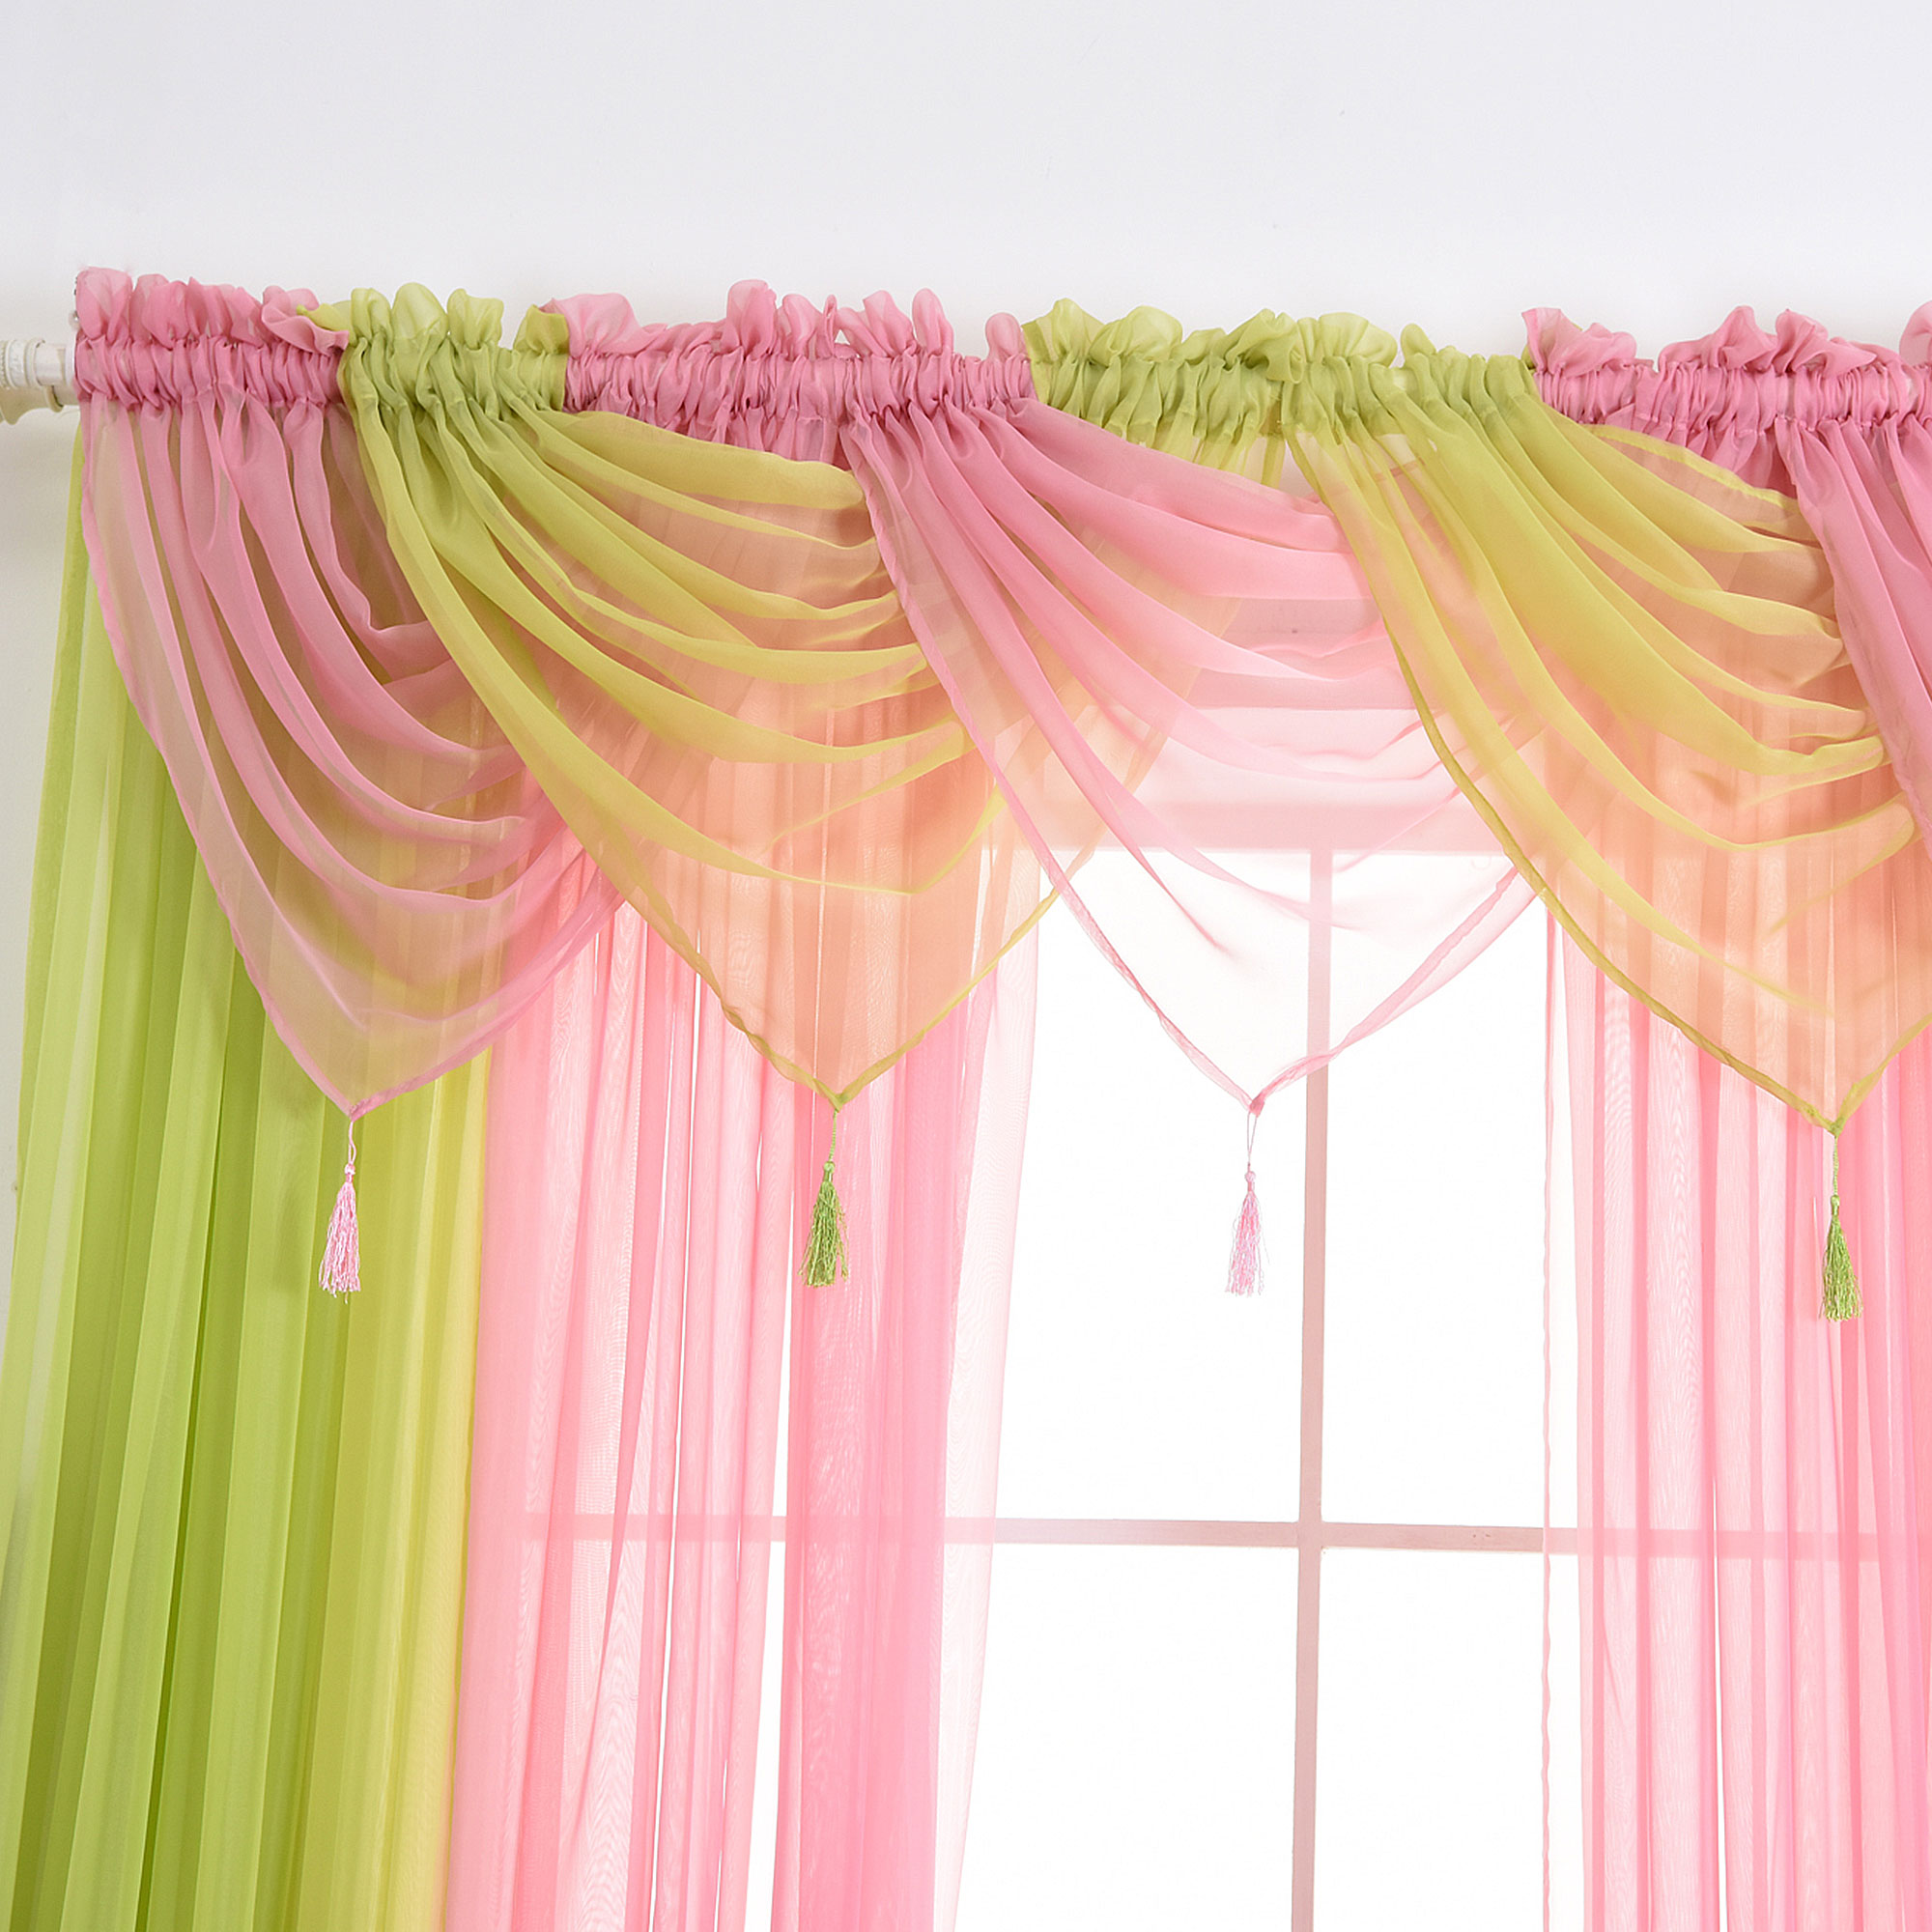 Solid Sheer Voile Net Curtains/Drape/Panel/Scarf/Valance